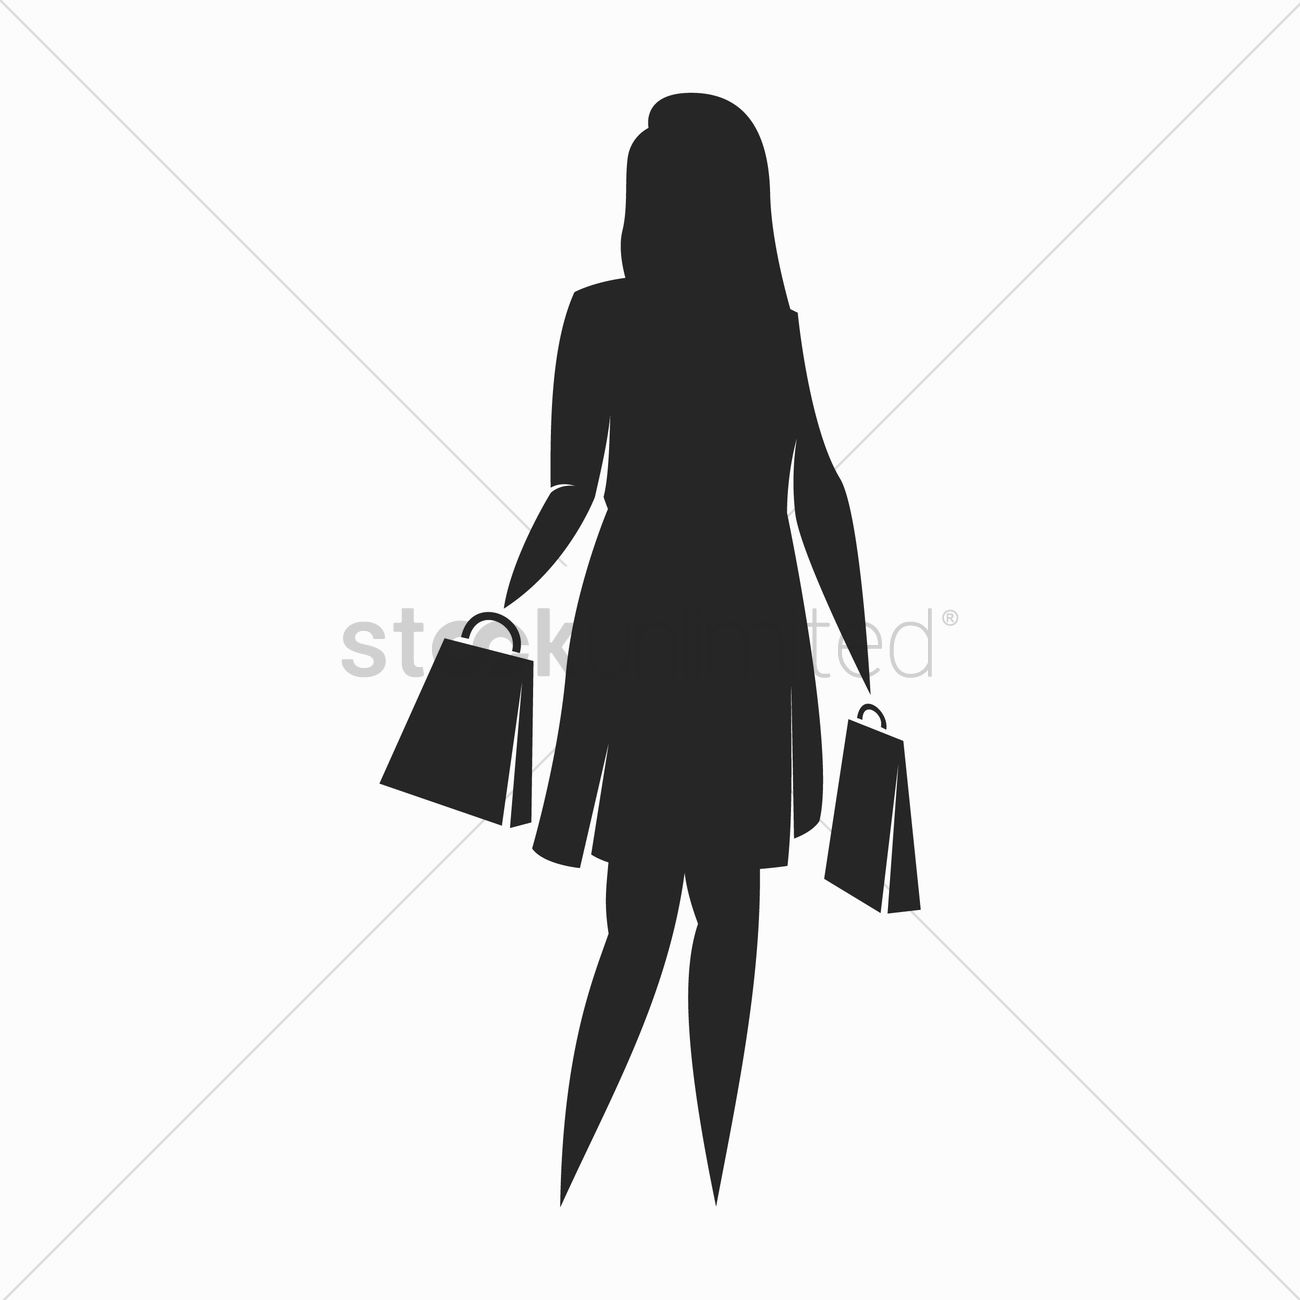 1300x1300 Silhouette Of Woman Holding Shopping Bag Vector Image